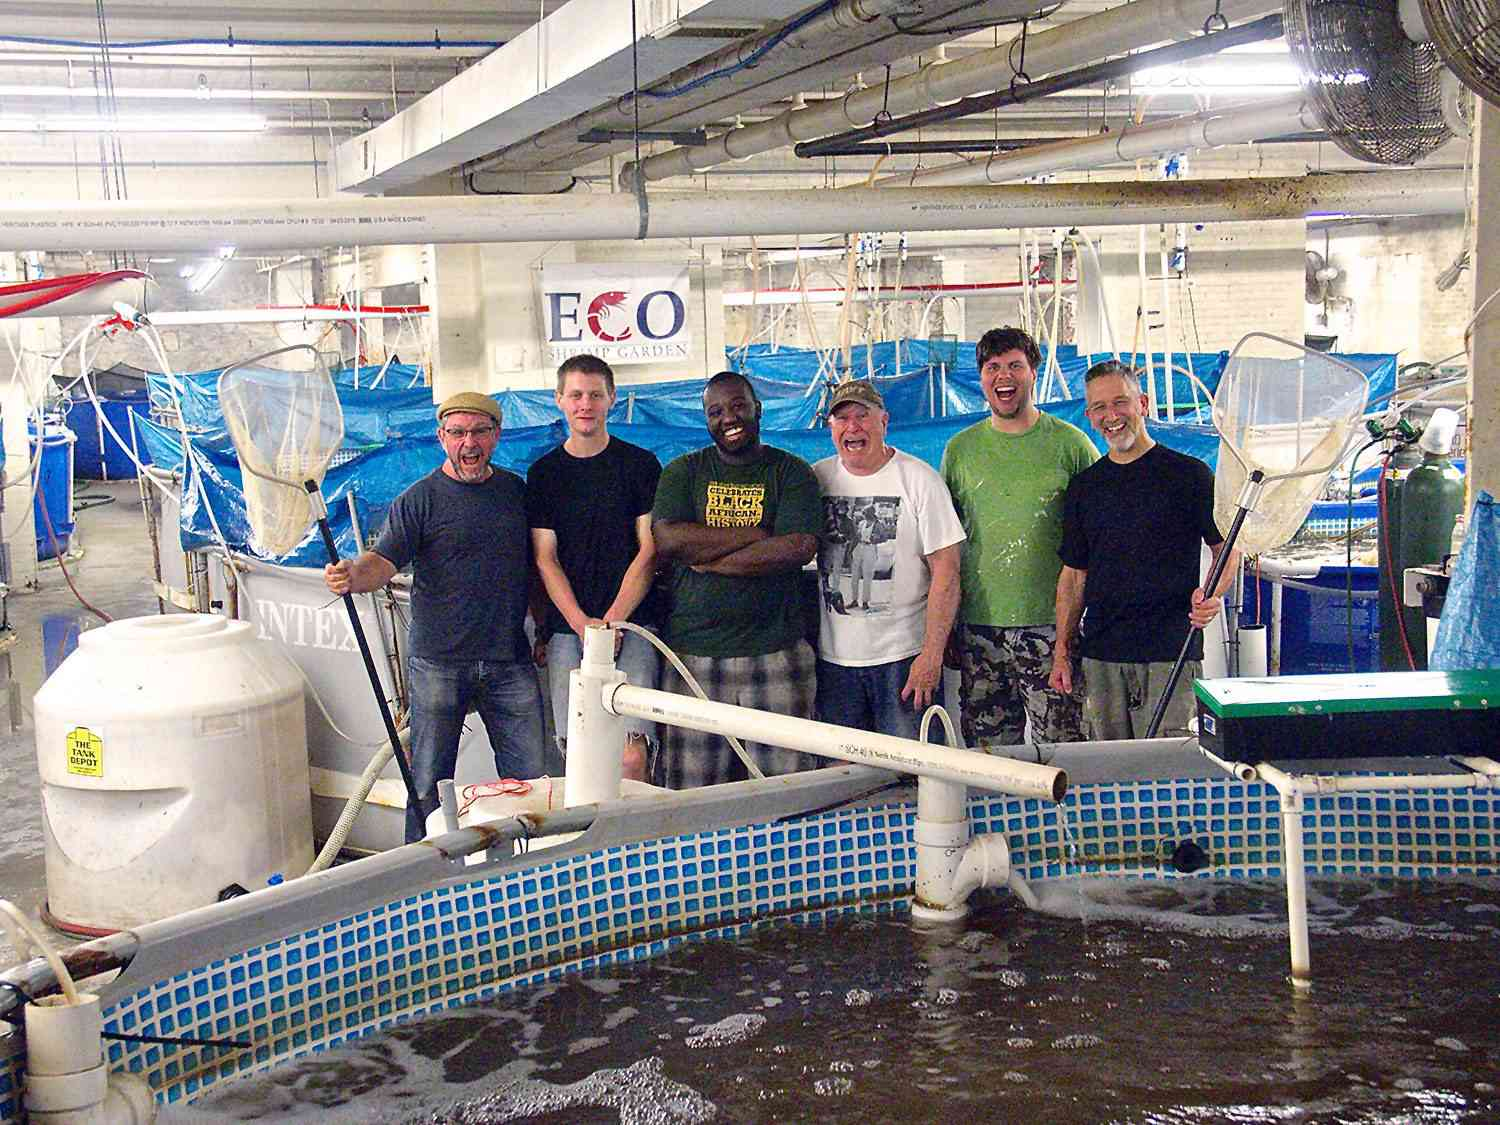 An early shrimp aquaculture setup used by Eco Shrimp Garden, with the company's staff (including Jean Claude Frajmund) standing nearby with nets